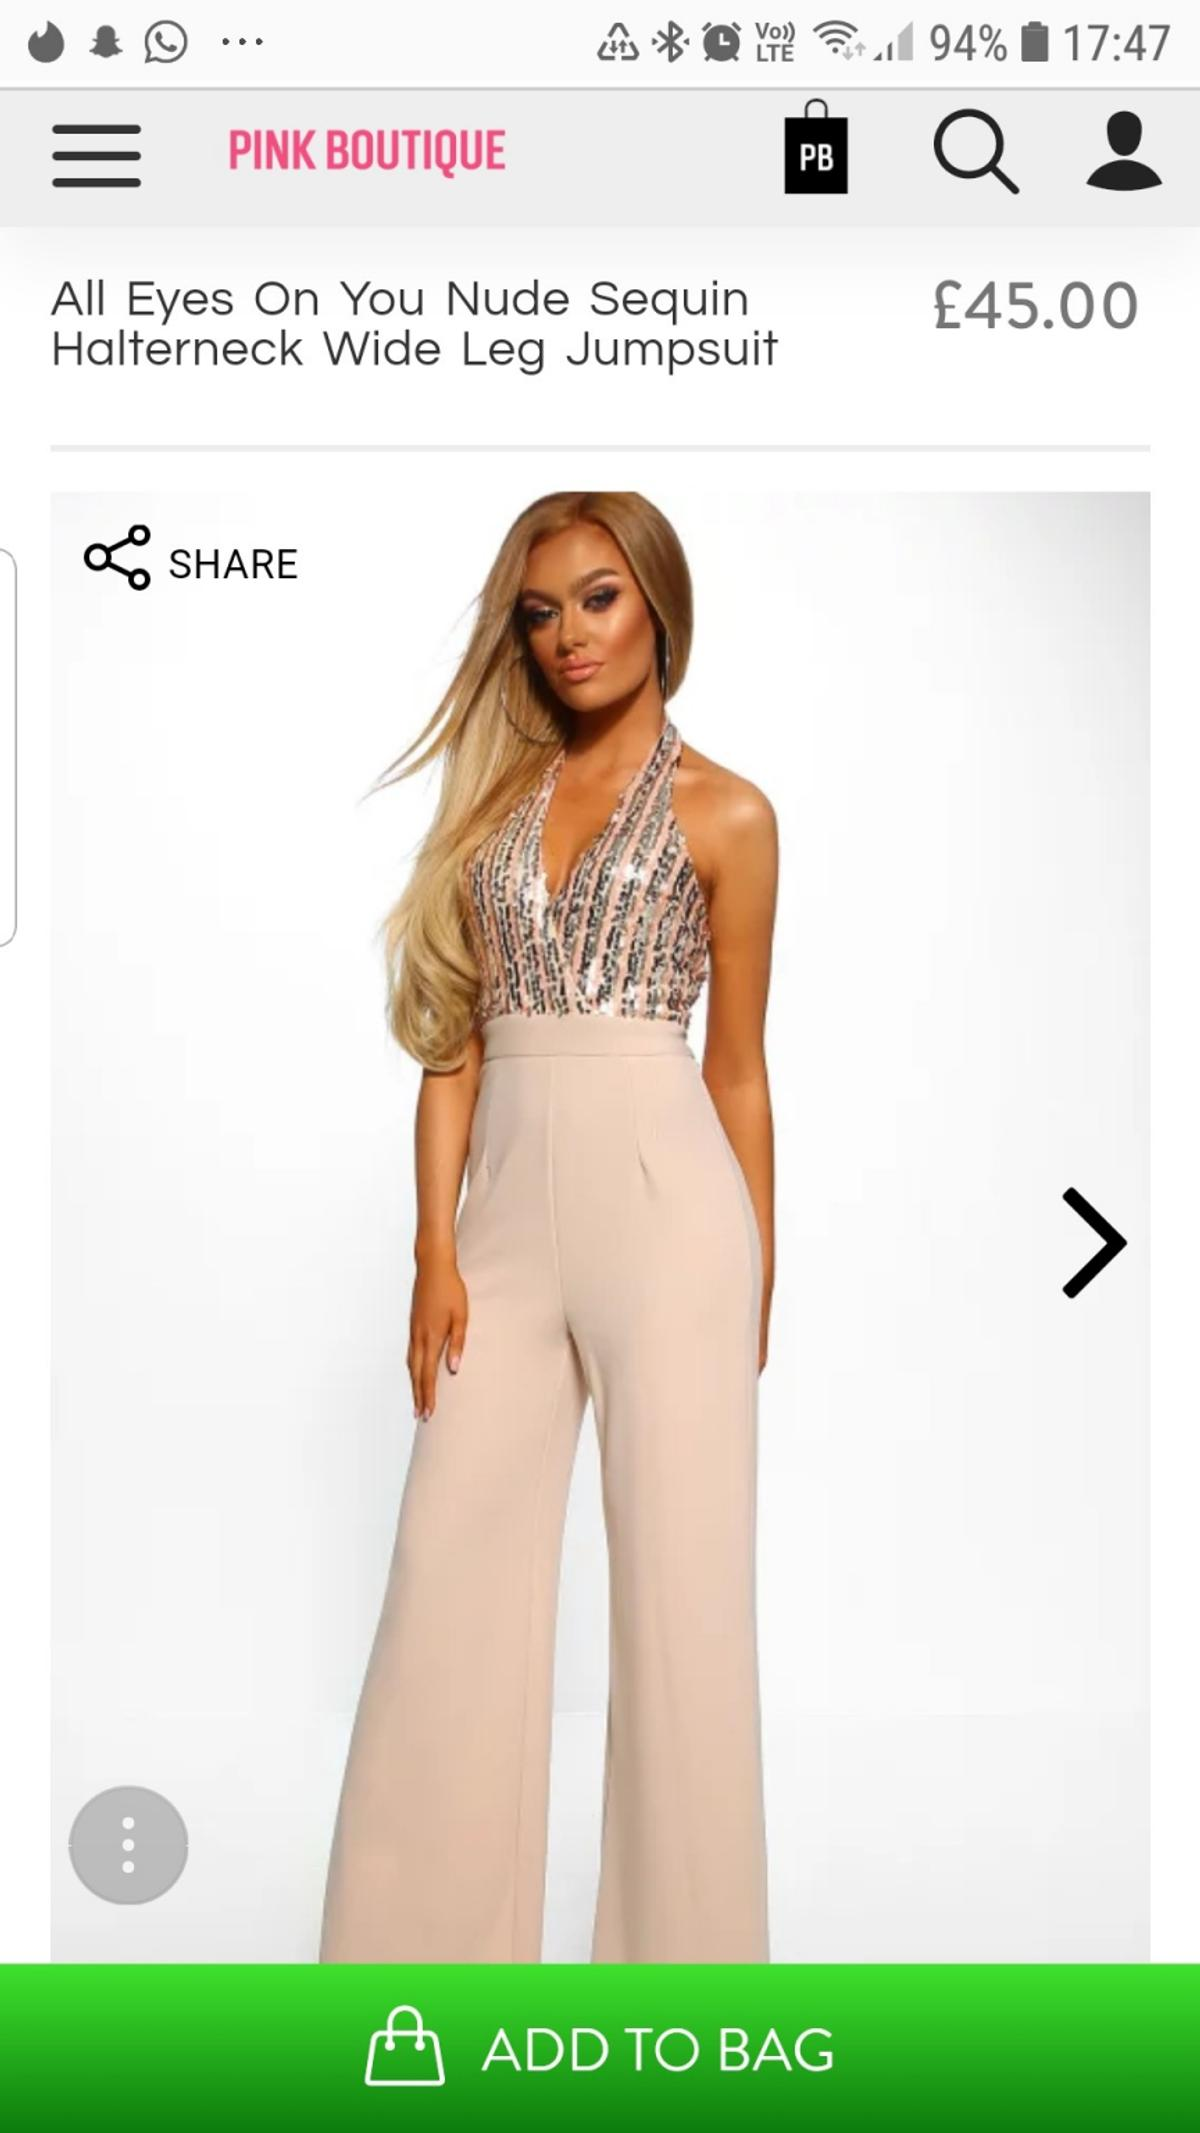 2019 original various kinds of great look Pink Boutique Nude Jumpsuit Size 14 in B77 Tamworth for ...